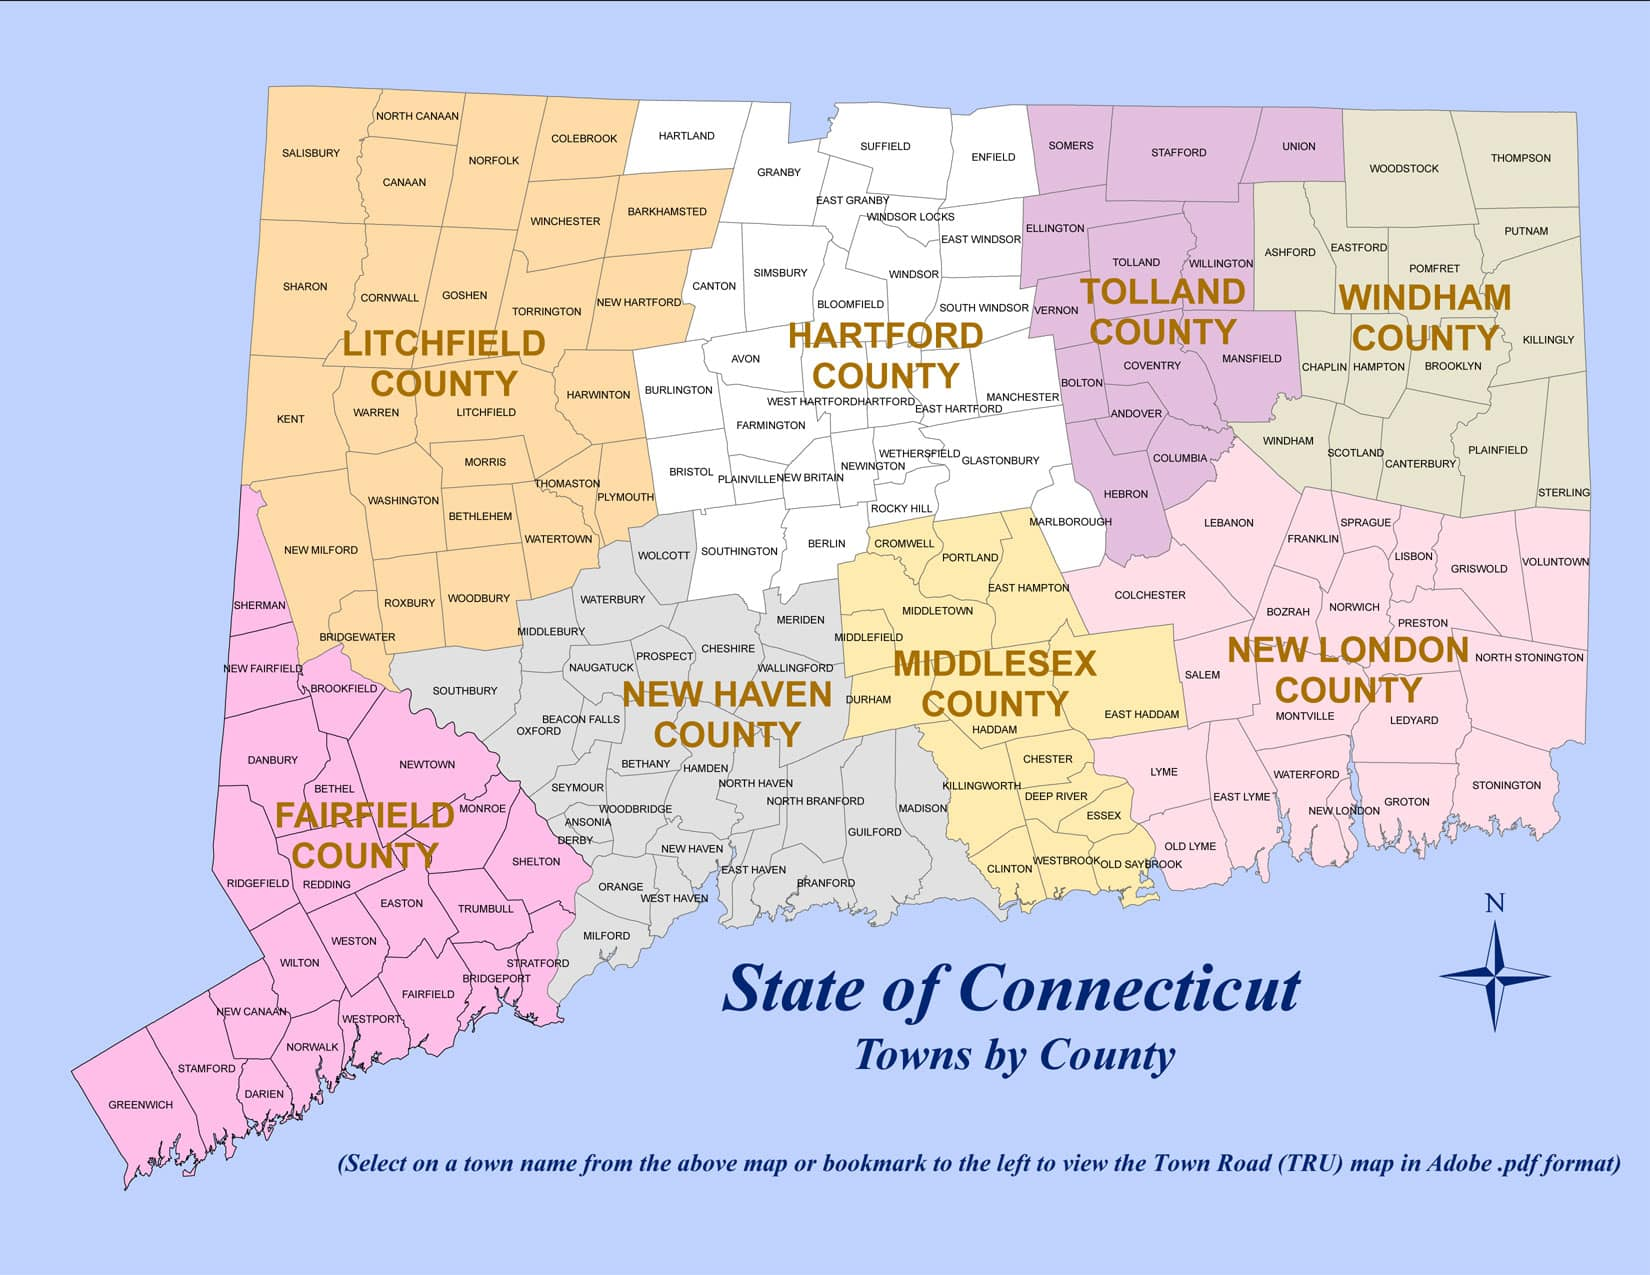 locations statewide for bail bonds service